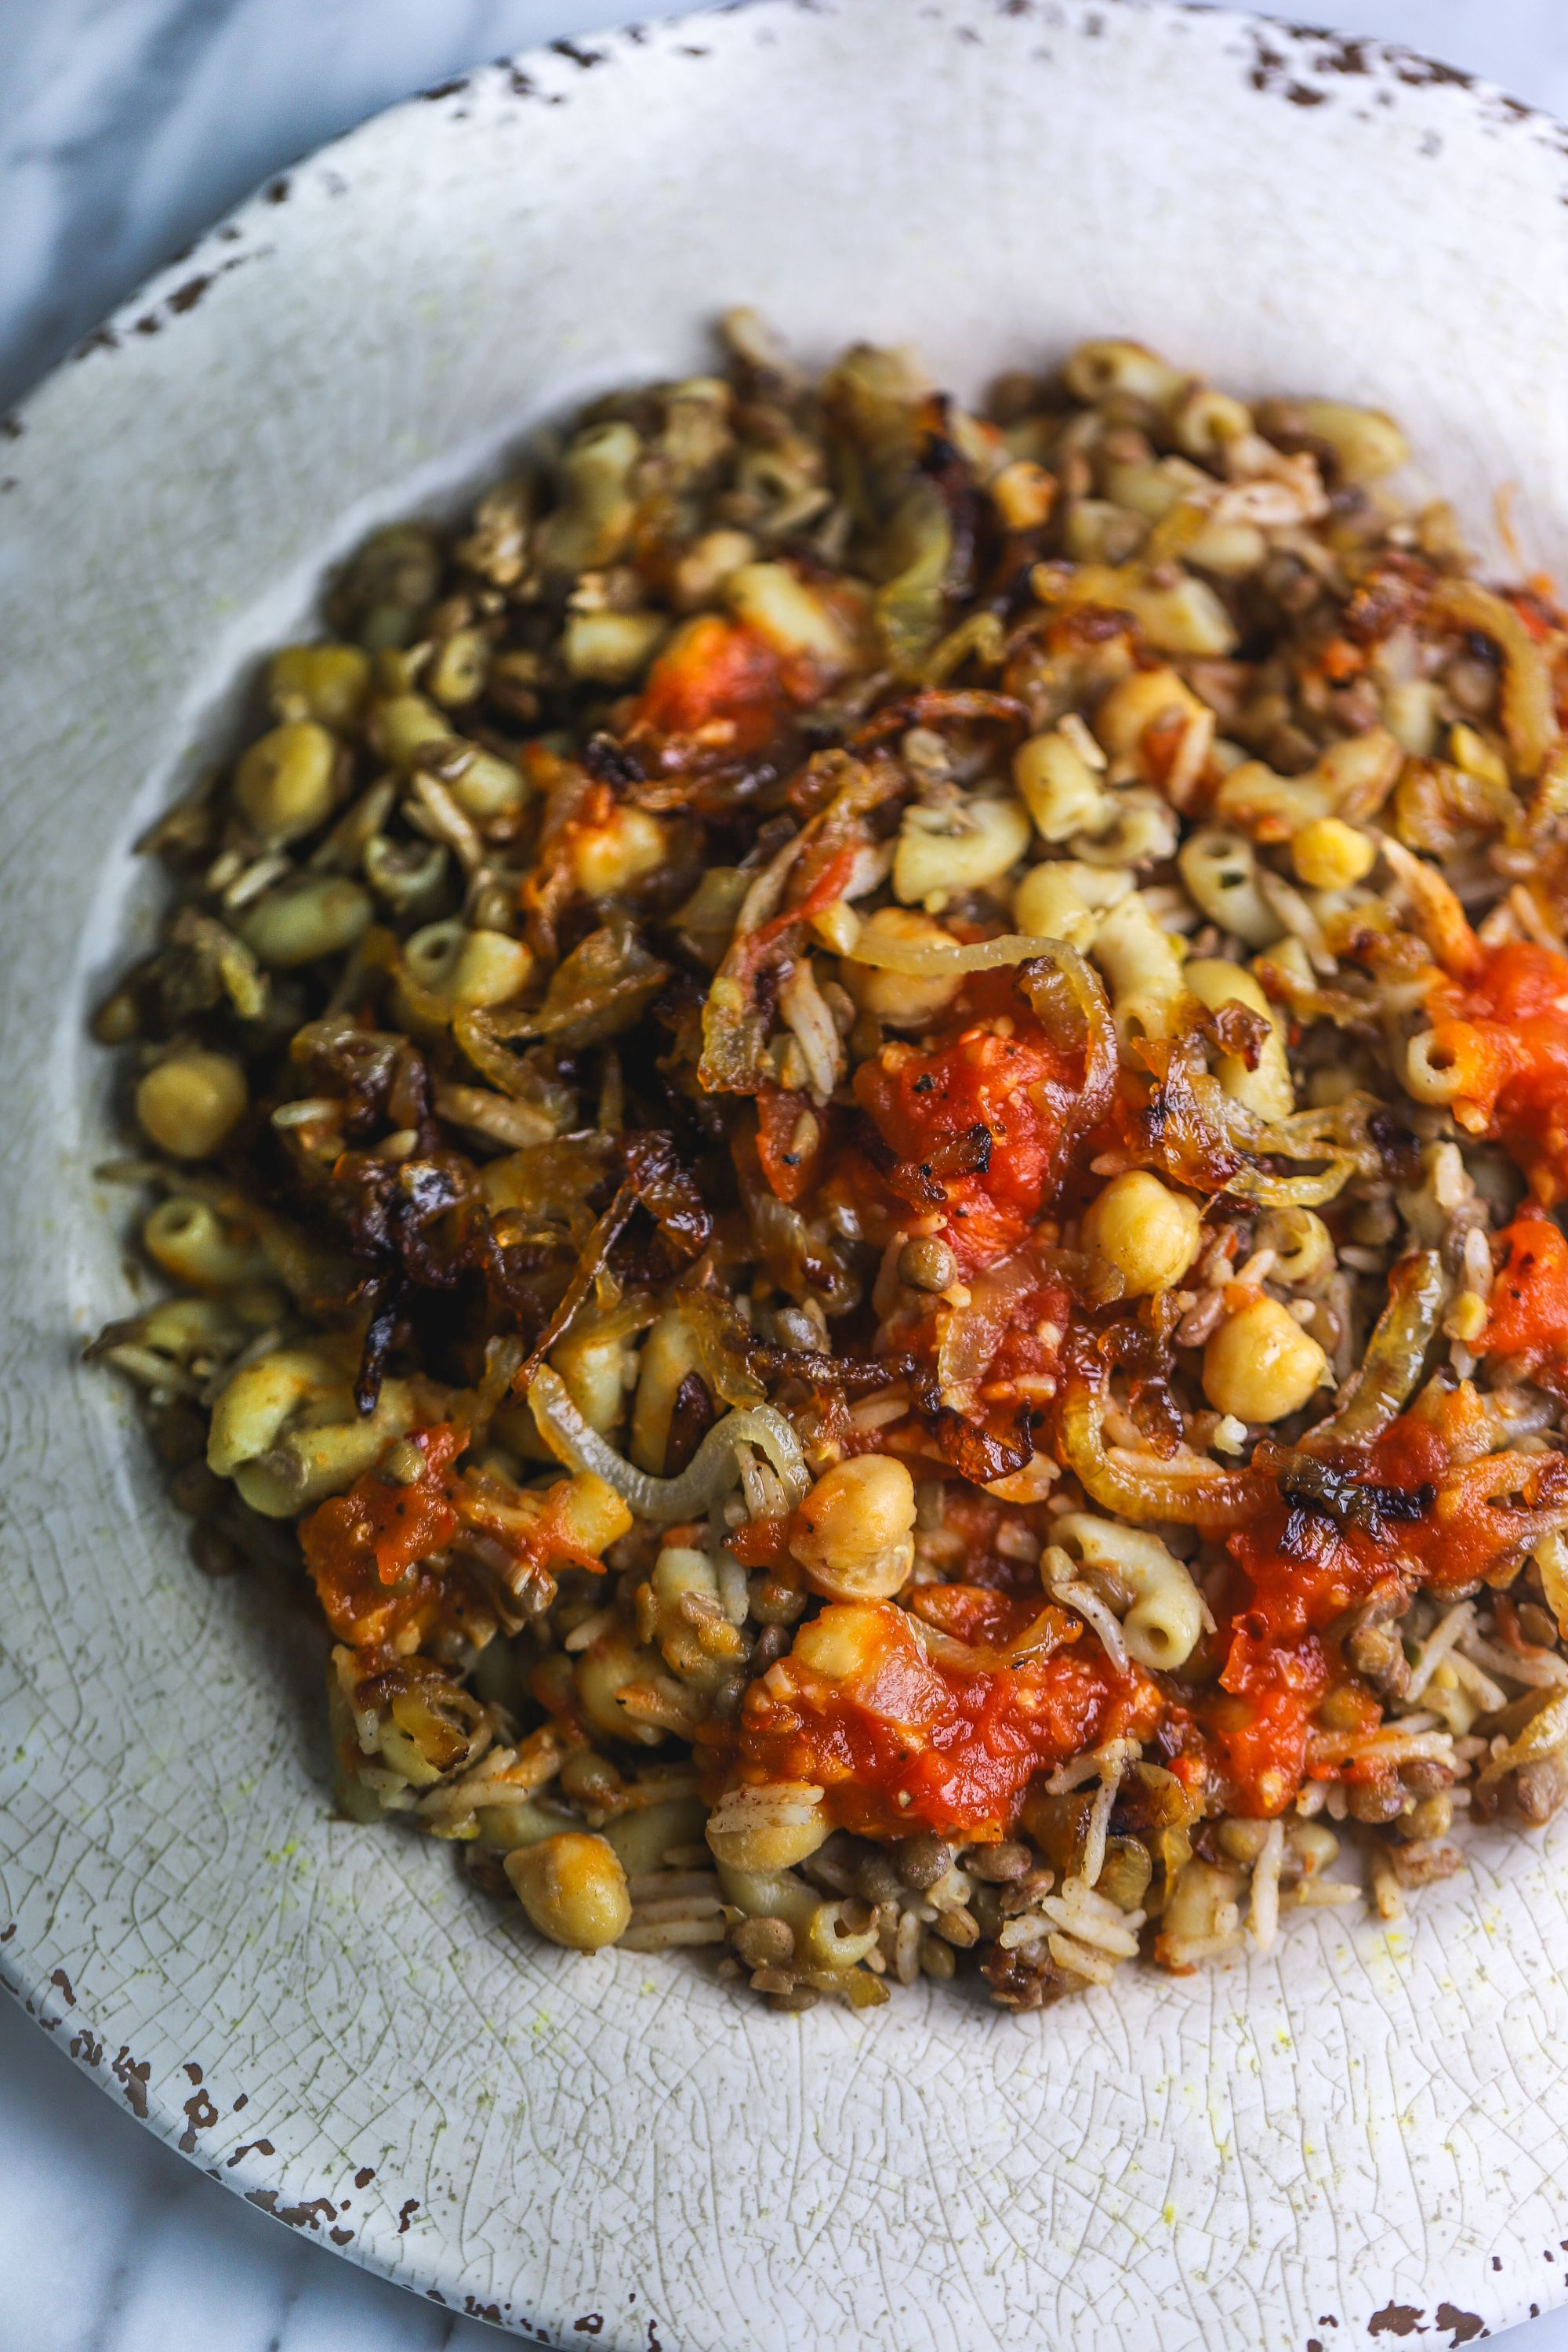 Koshari – Egyptian Pasta, Lentil, and Rice Dish